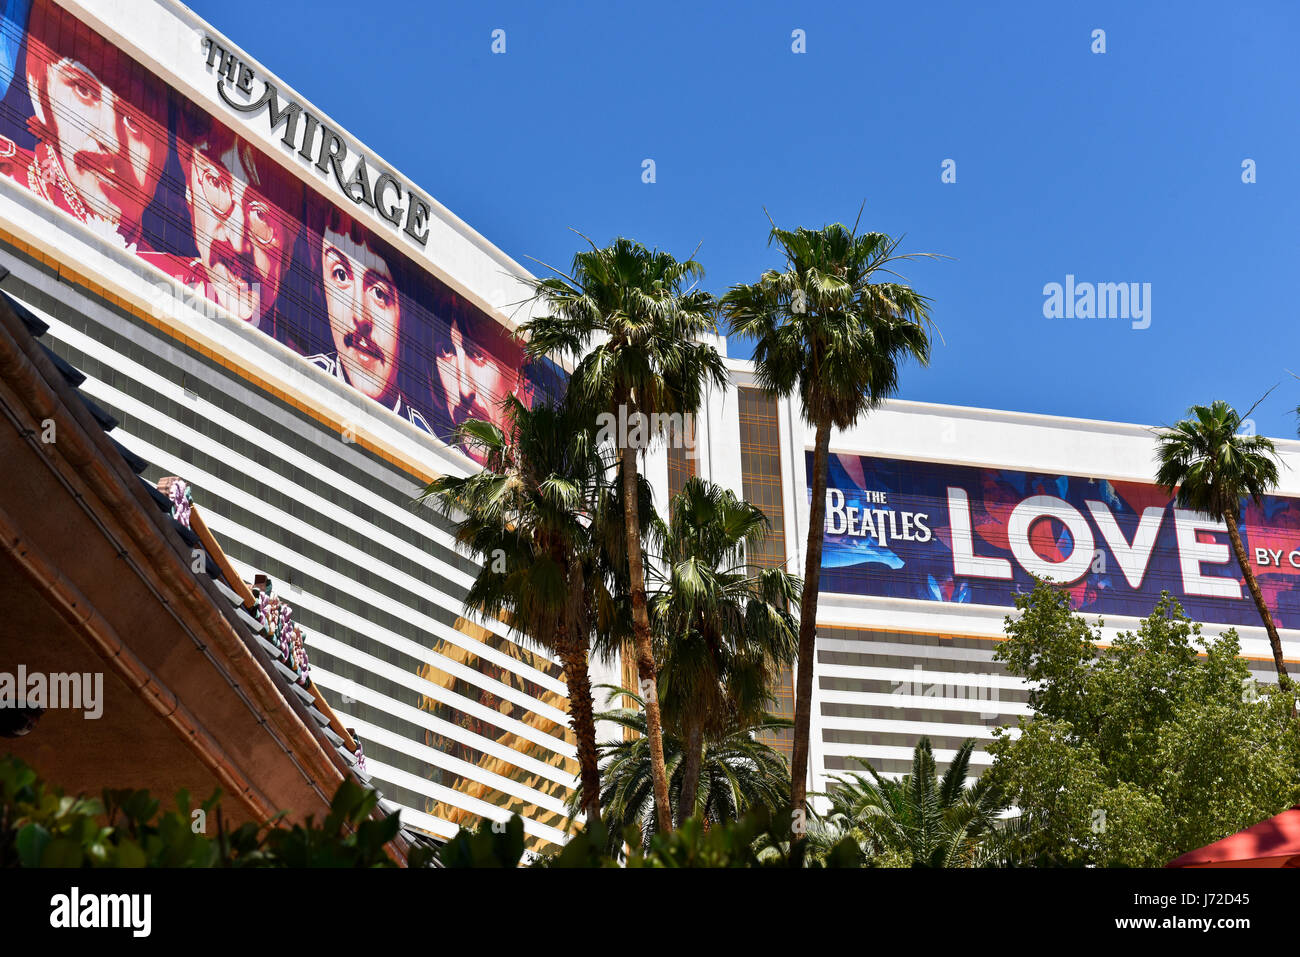 the mirage hotel and casino The mirage hotel and casino, las vegas, nevada 410k likes the beatles love, cloud-like beds, a rock 'n roll volcano & white tigers (oh my) - plus the.